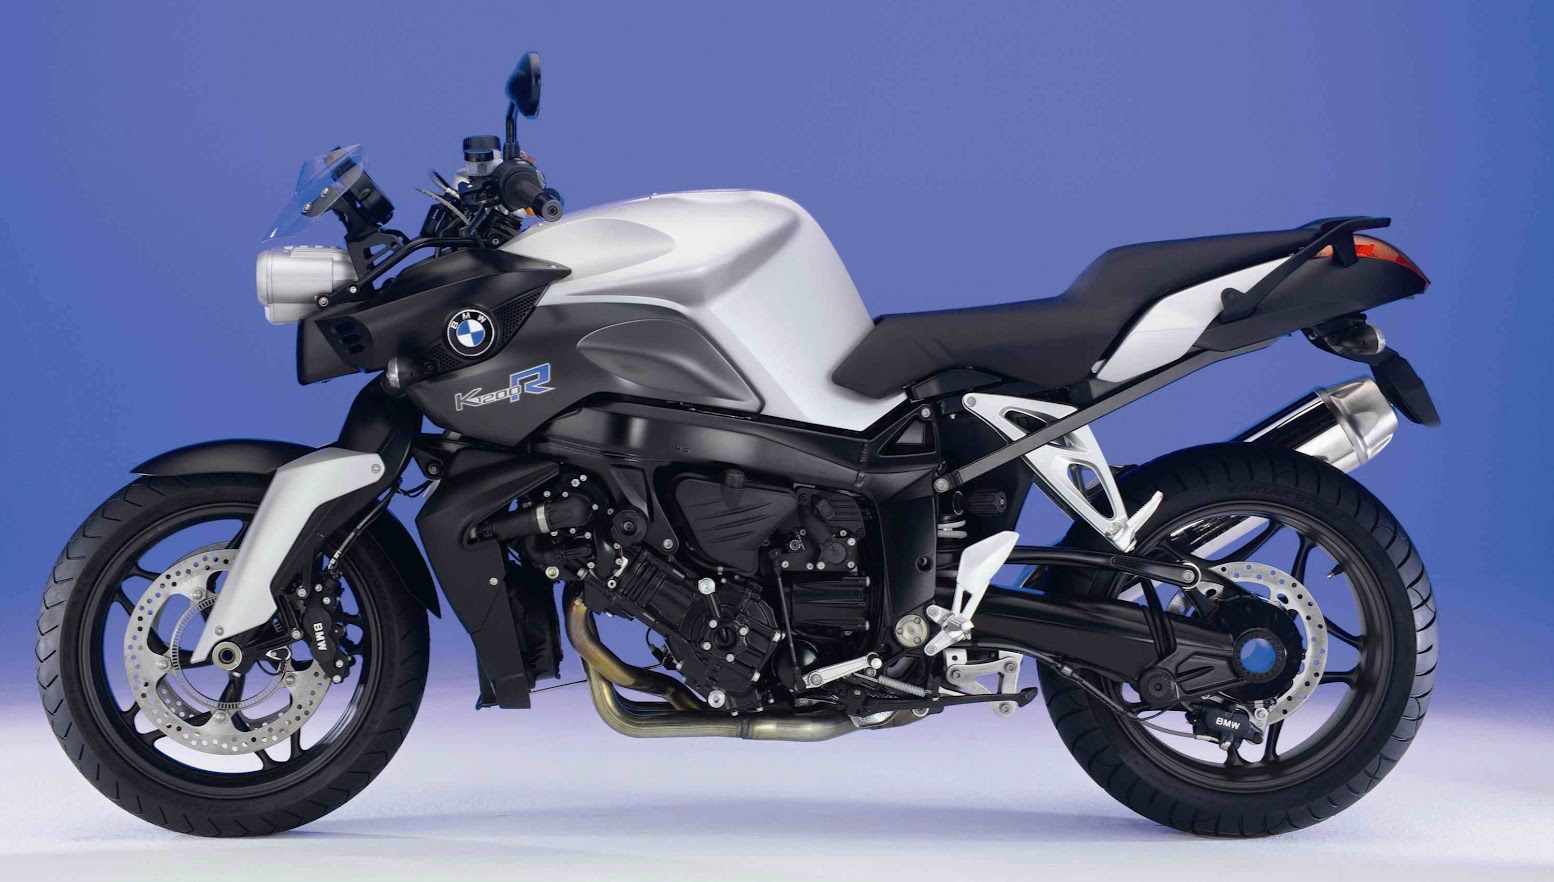 BMW K 1200 R manual taller - servicio- mecanica y despiece